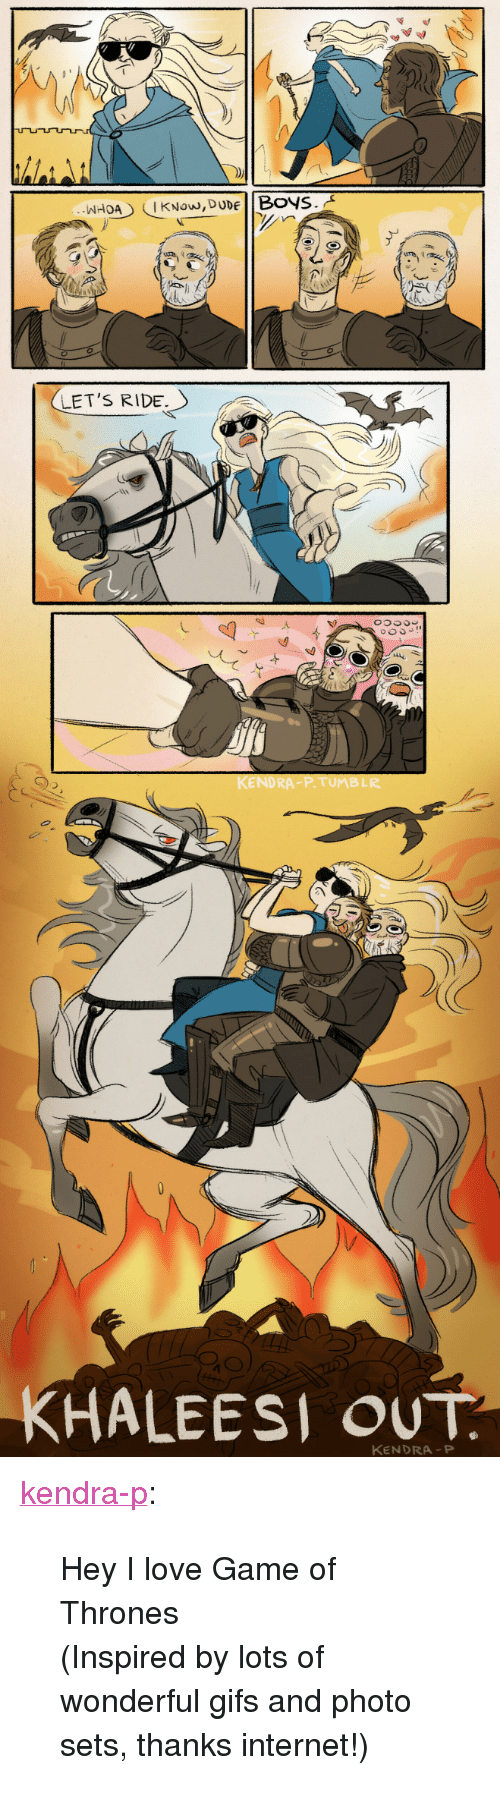 """kendra: LET'S RIDE.  KHALEESİ OUT  KENDRA P <p><a class=""""tumblr_blog"""" href=""""http://kendra-p.tumblr.com/post/48698387340/danyvsastapor"""">kendra-p</a>:</p> <blockquote> <p>Hey I love Game of Thrones</p> <p>(Inspired by lots of wonderful gifs and photo sets, thanks internet!)</p> </blockquote>"""